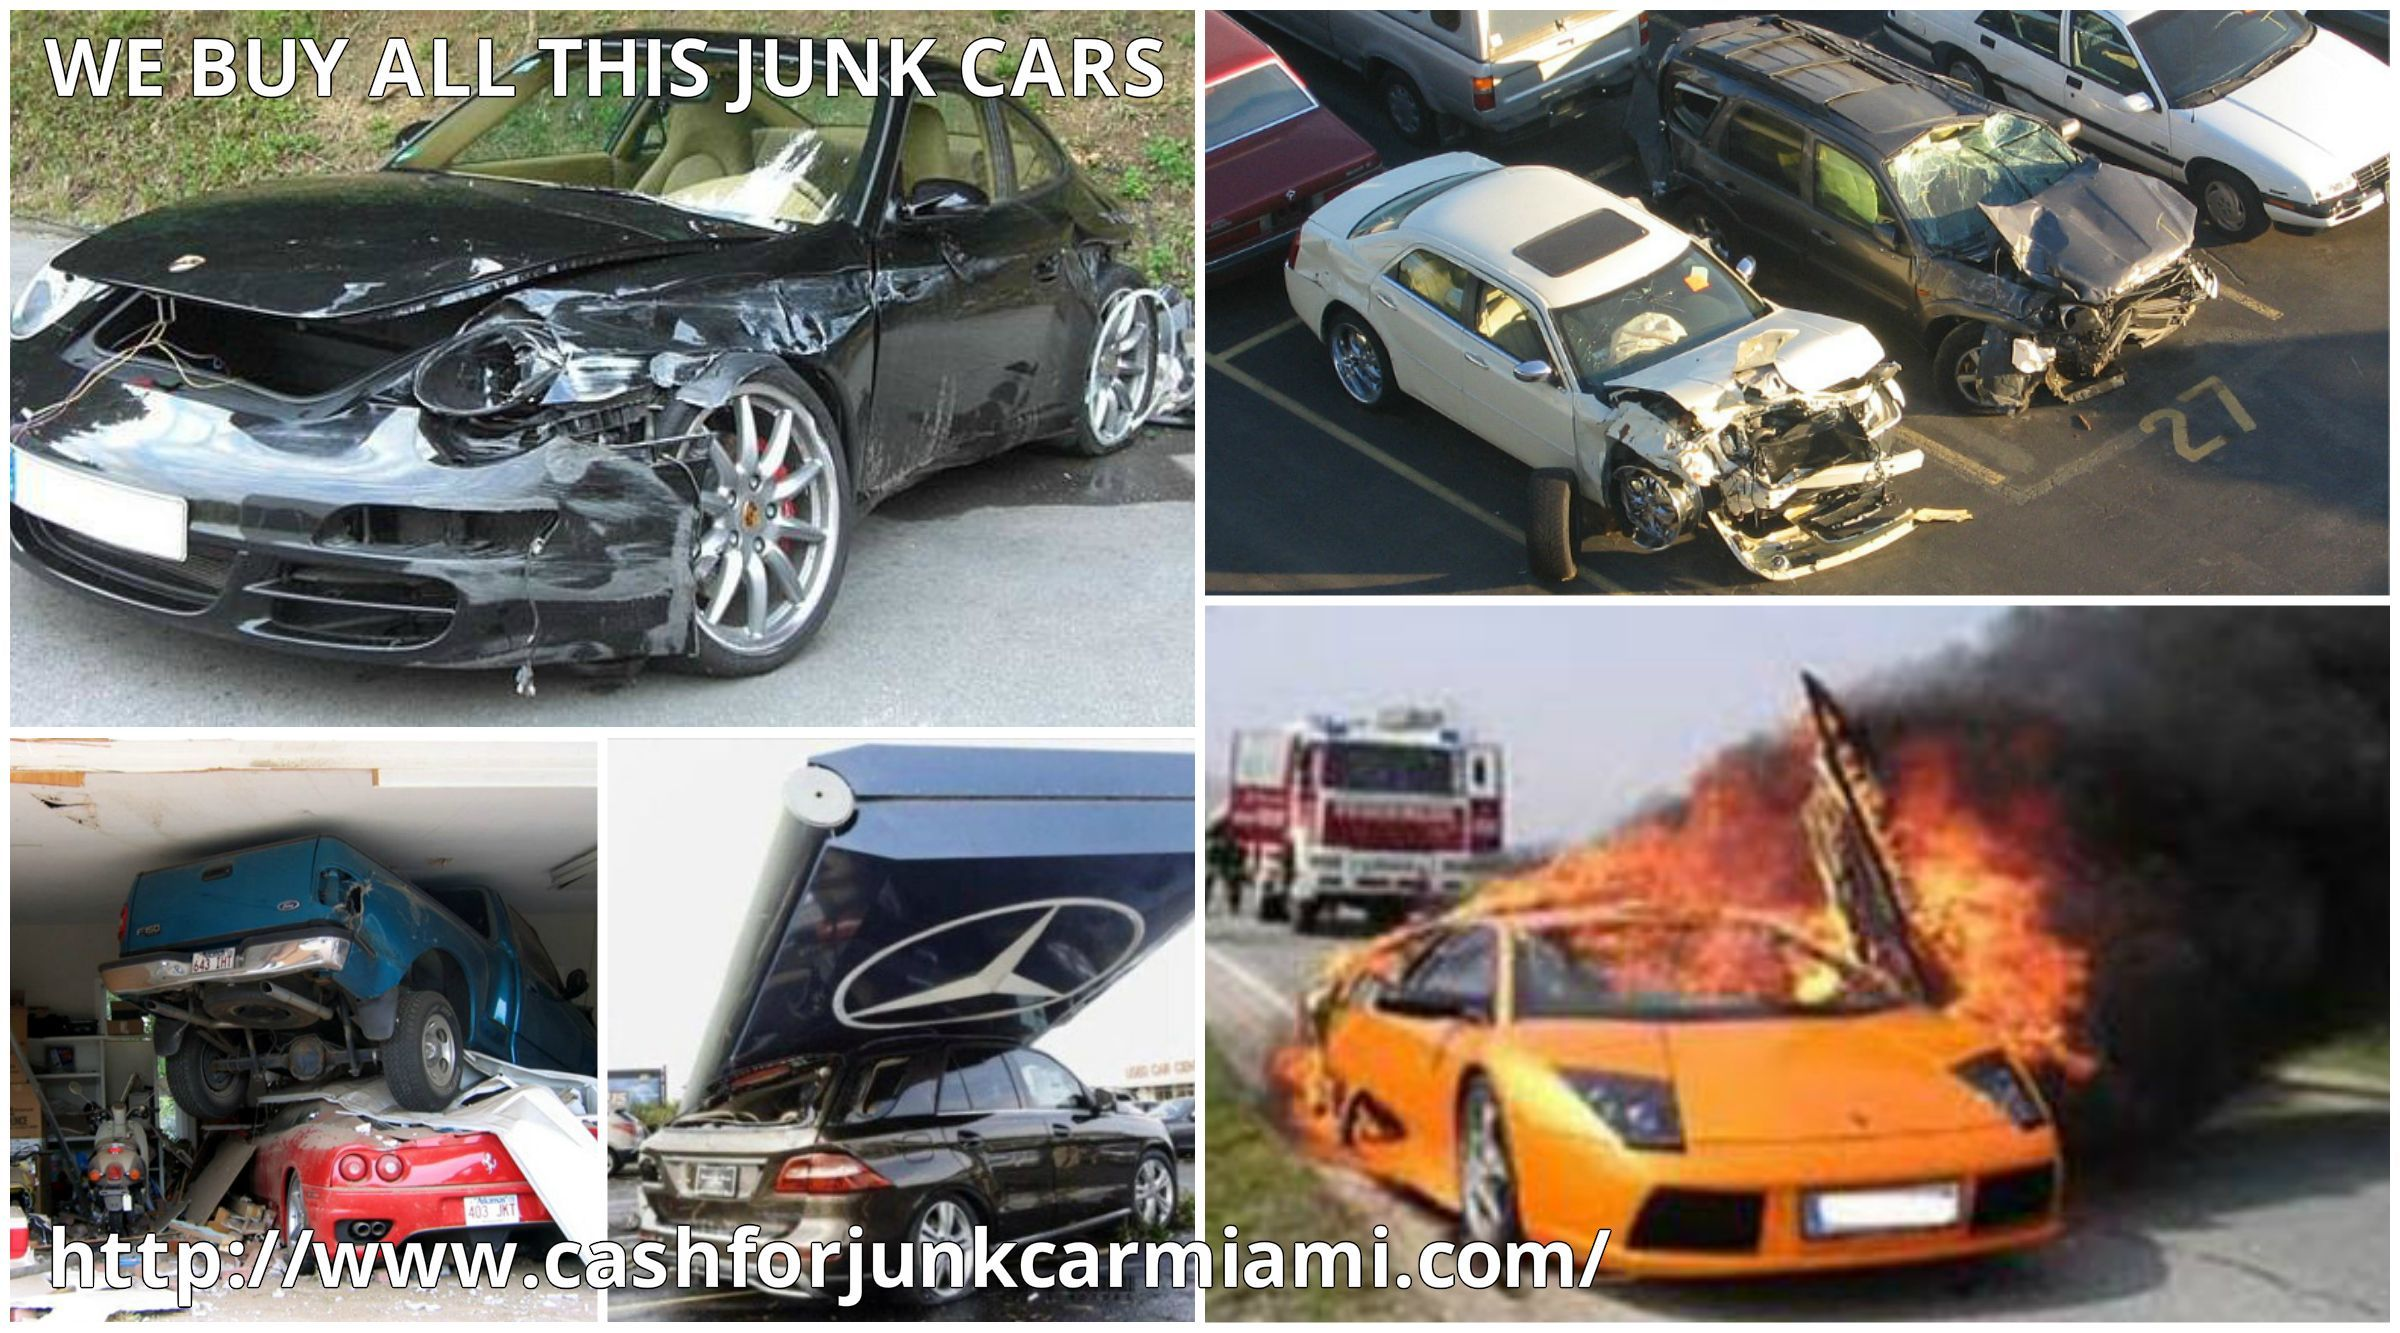 http://www.cashforjunkcarmiami.com/ Cash For Junk Car Miami ...